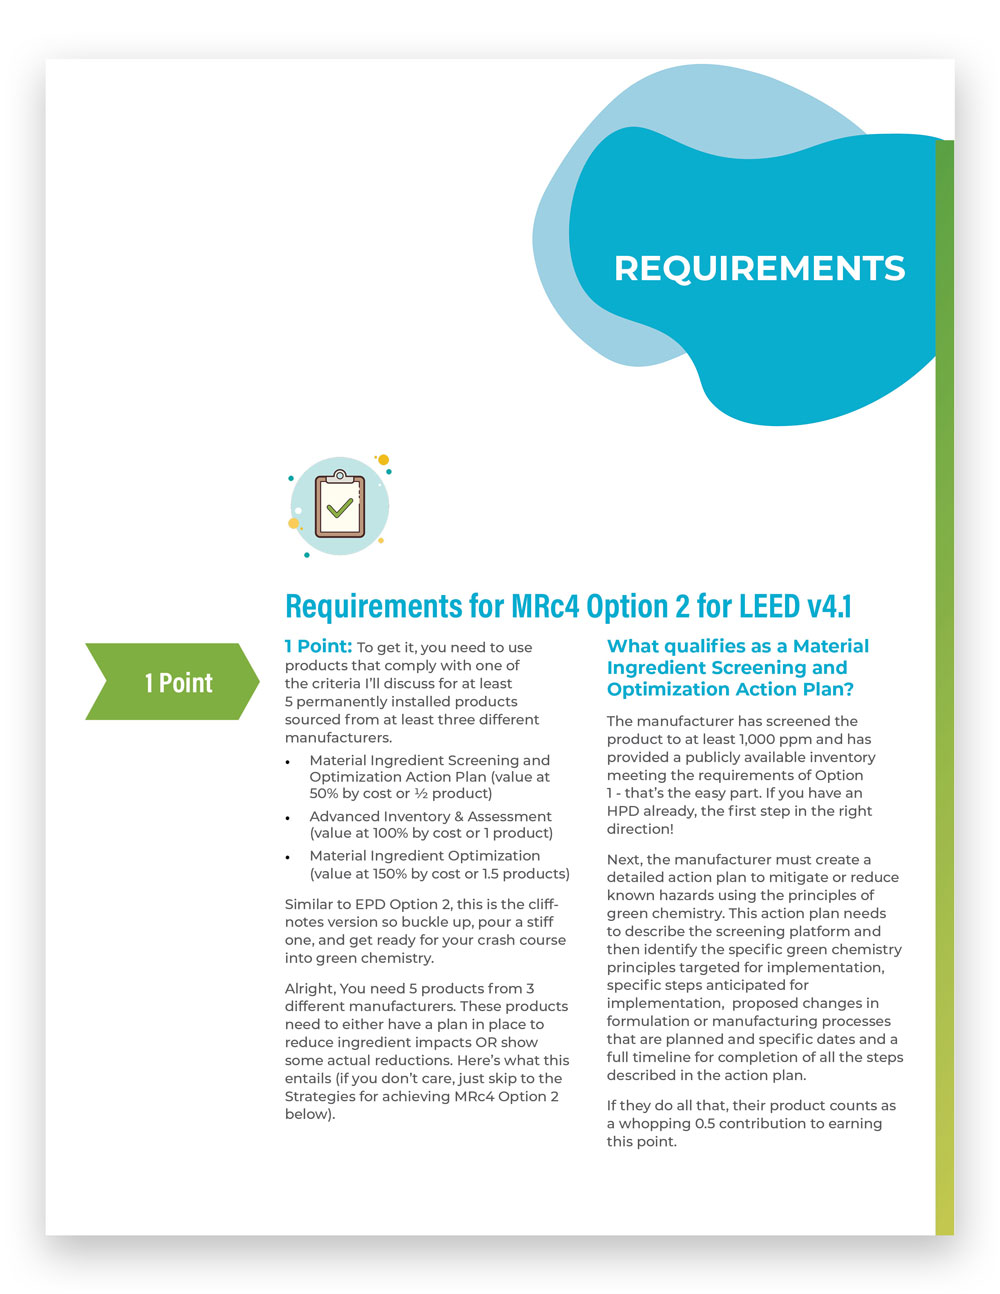 LEED Material Ingredient Optimization requirements